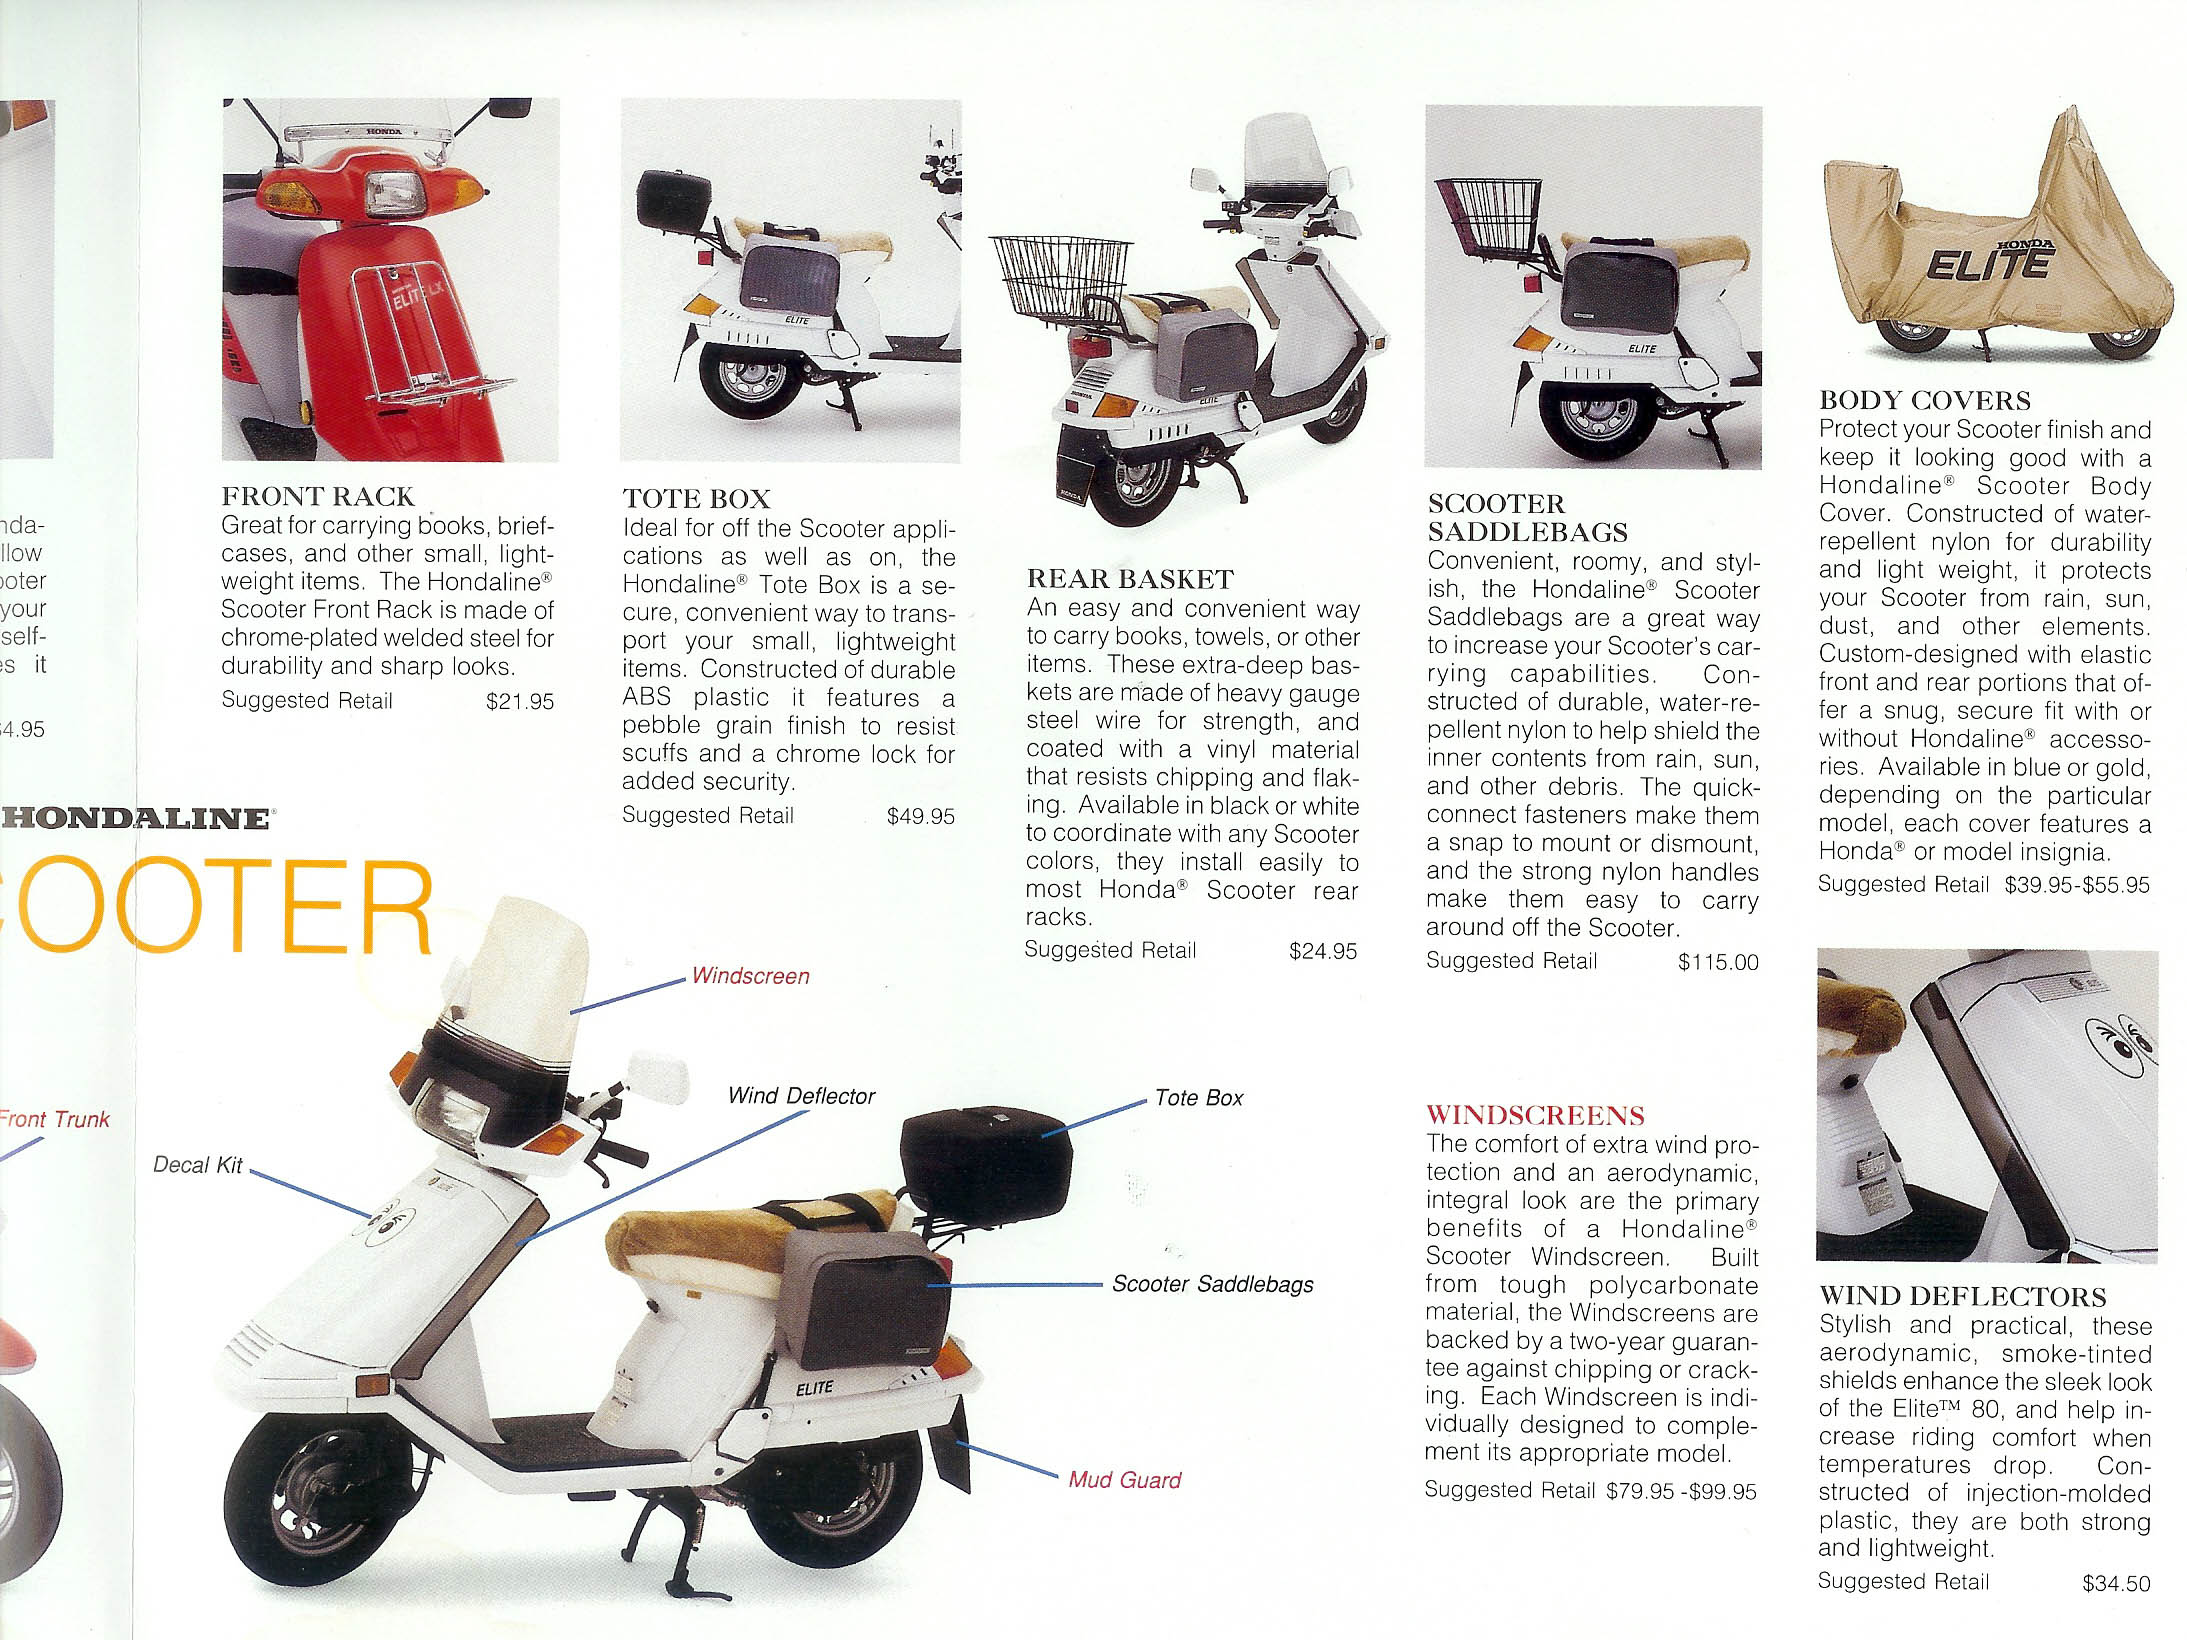 1989 Scooter Accessories page 3, full size ...